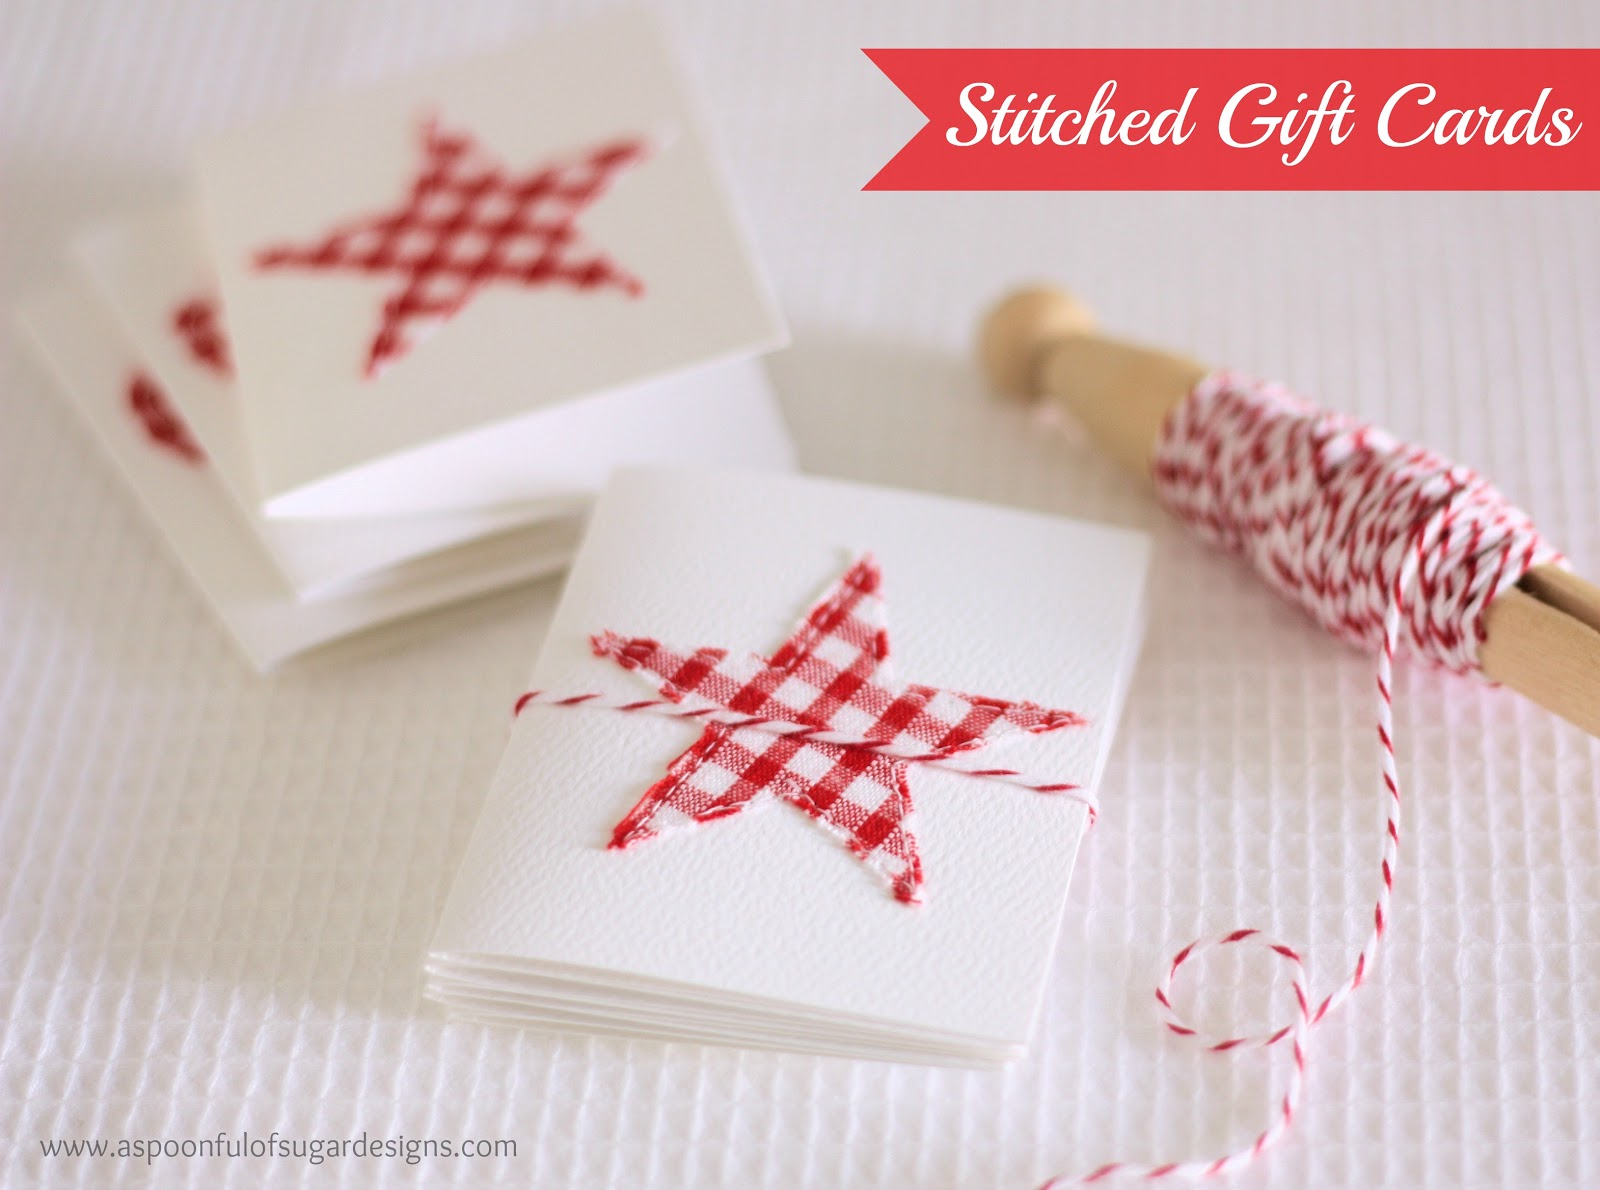 Stitched Gift Cards - A Spoonful of Sugar